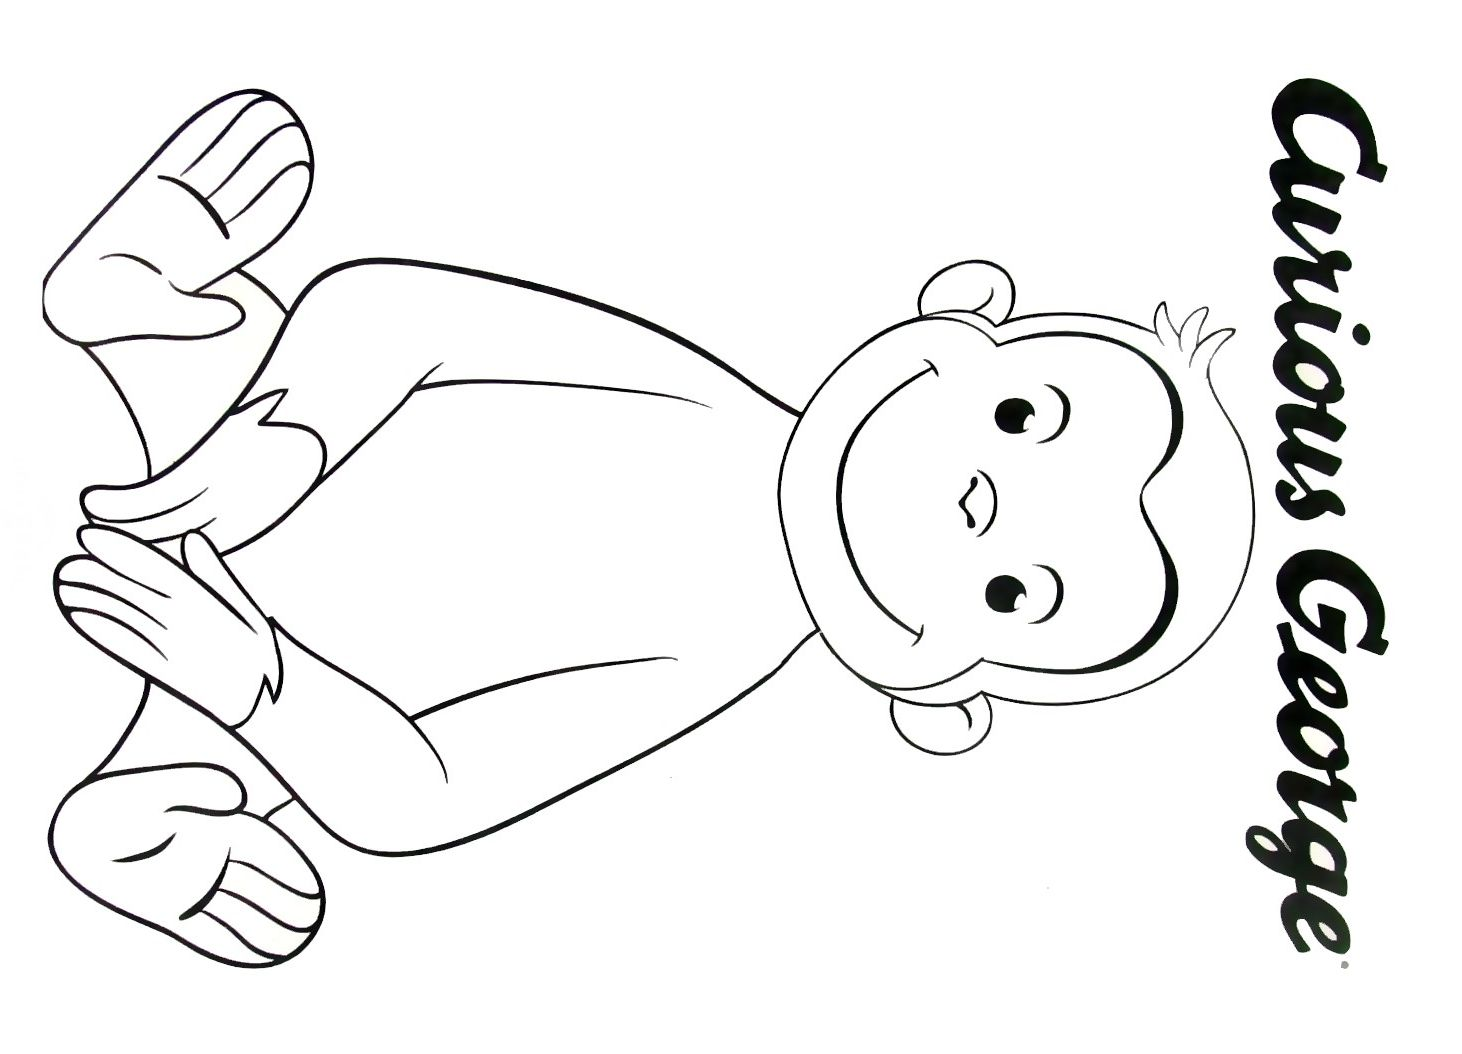 Curious George Face Coloring Pages At GetDrawings.com